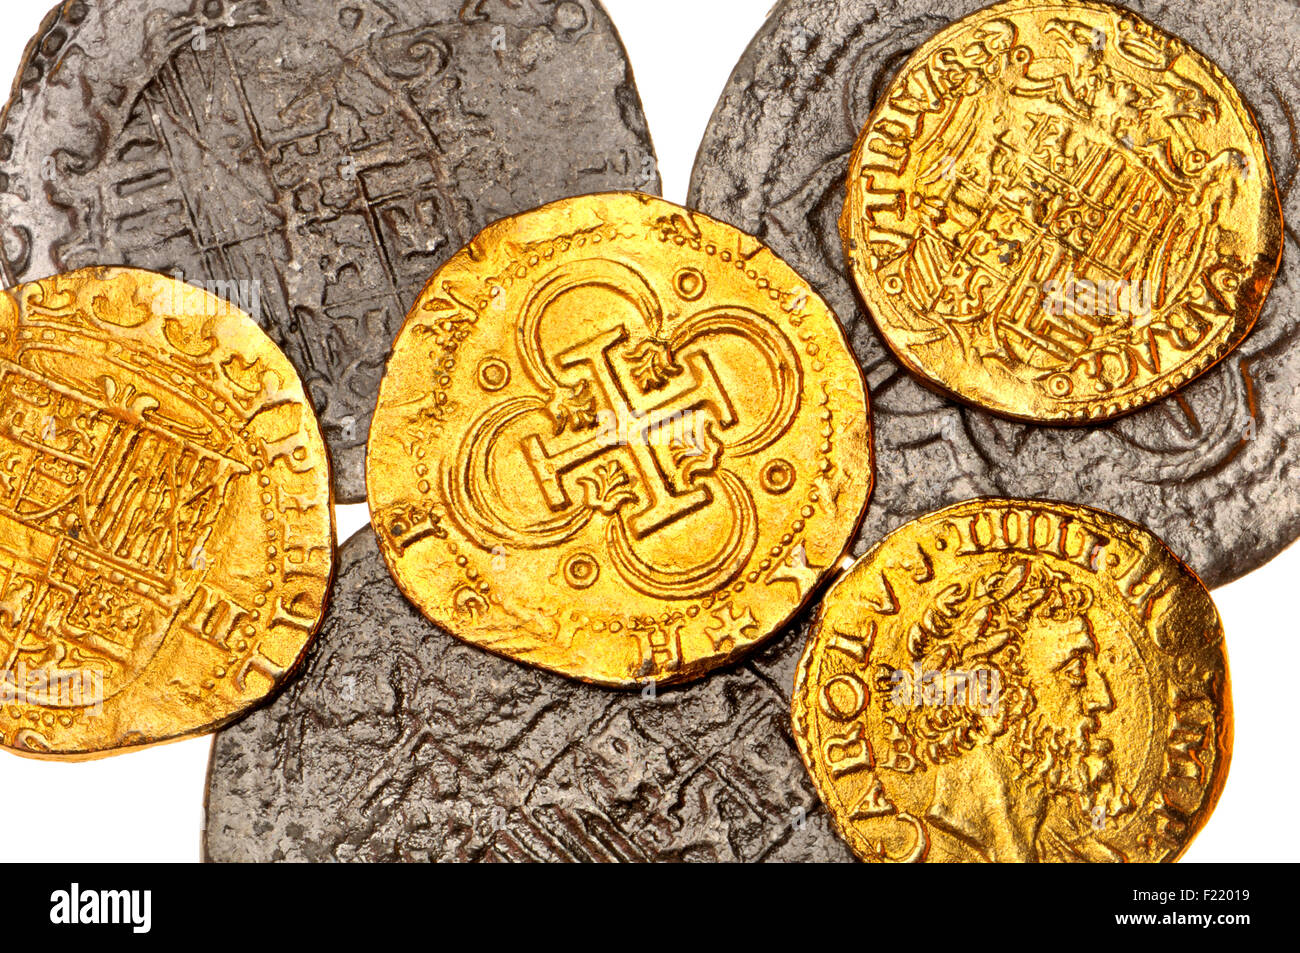 Coins Of The Spanish Armada Replicas 8 Reales Phillip II Largest Behind 2 Escudos Centre And Left 1 Escudo